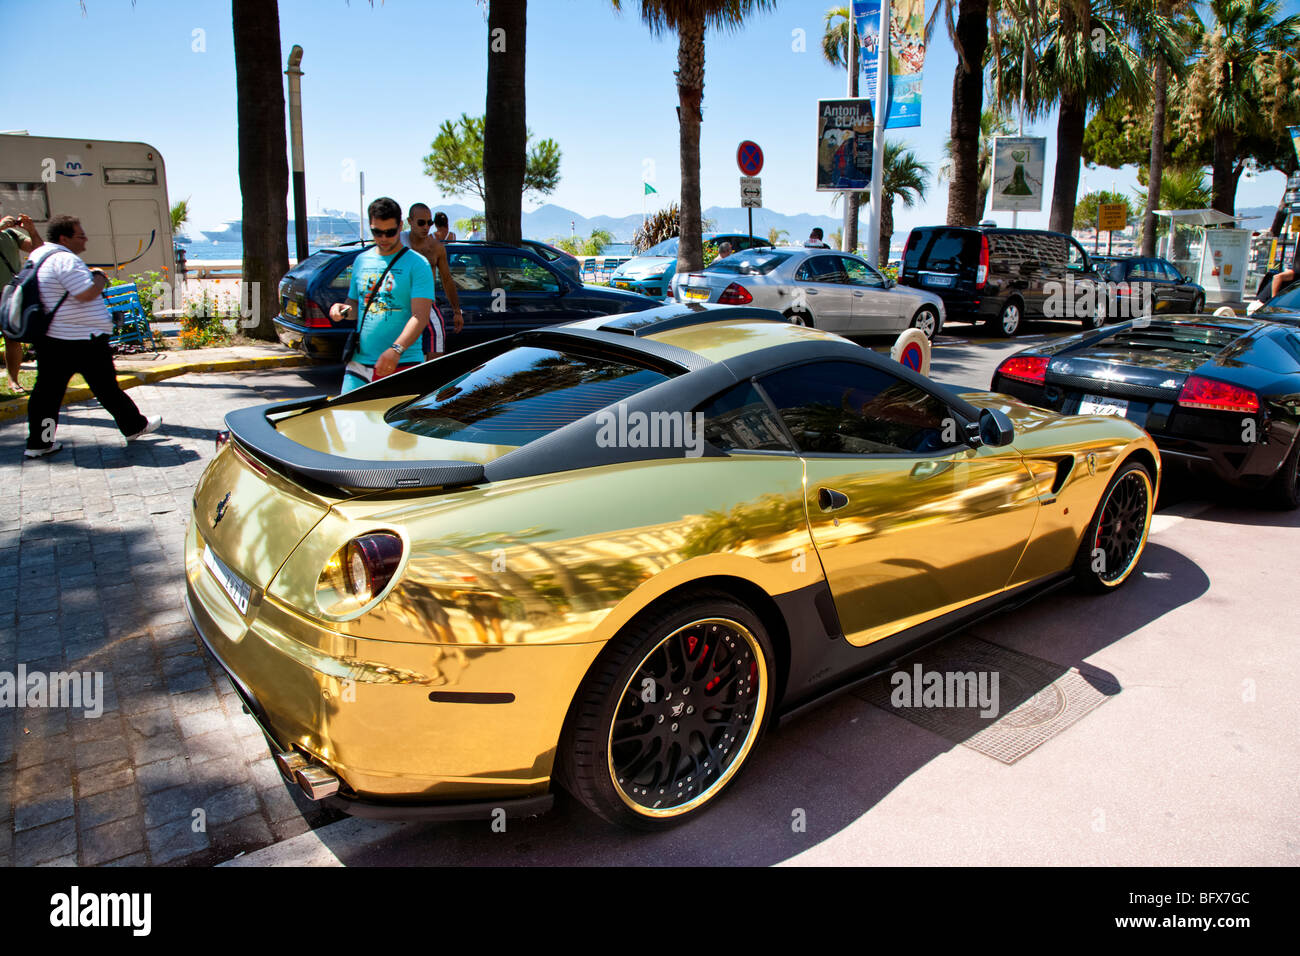 Gold Ferrari parked outside the Carlton Hotel, Cannes, Cote d'Azur, France - Stock Image